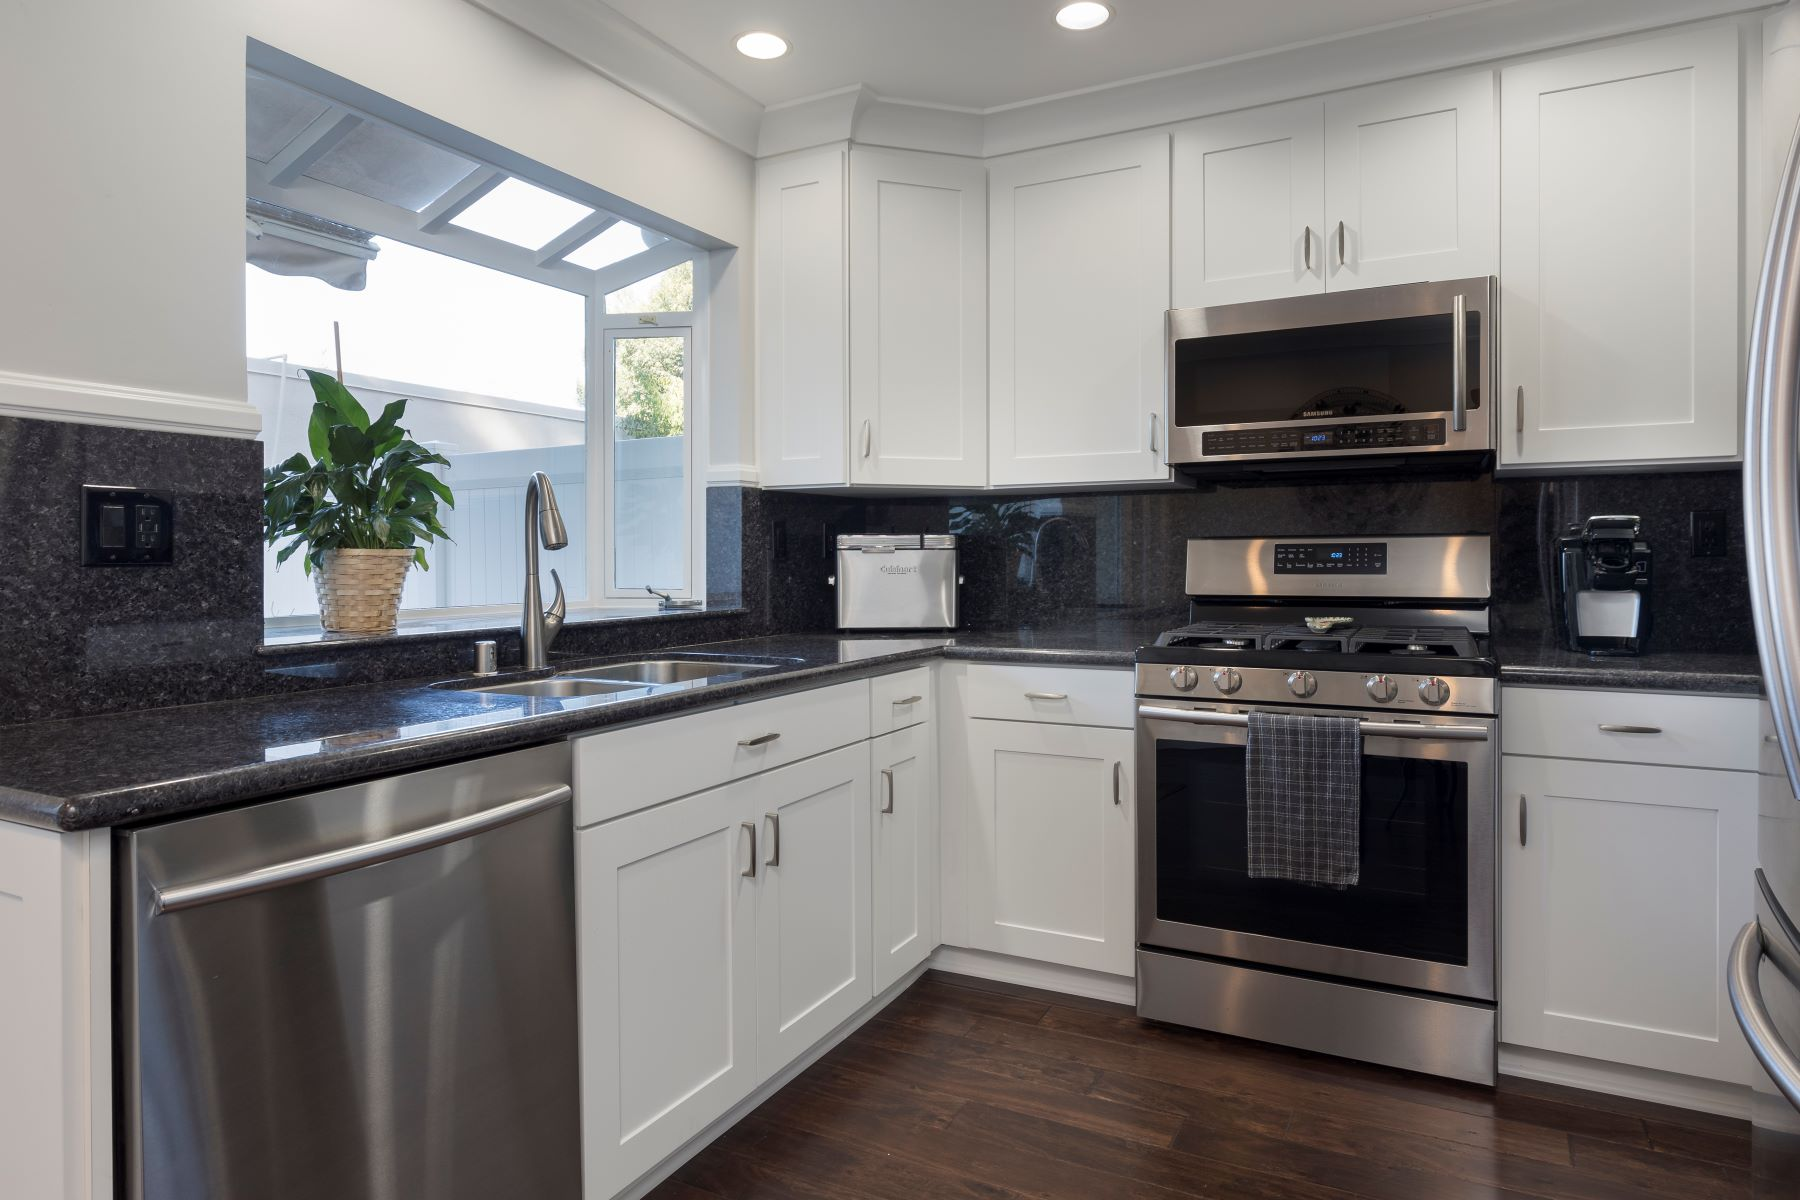 townhouses for Sale at 28554 Bearhaven Court, Rancho Palos Verdes, CA 90275 28554 Bearhaven Court Rancho Palos Verdes, California 90275 United States